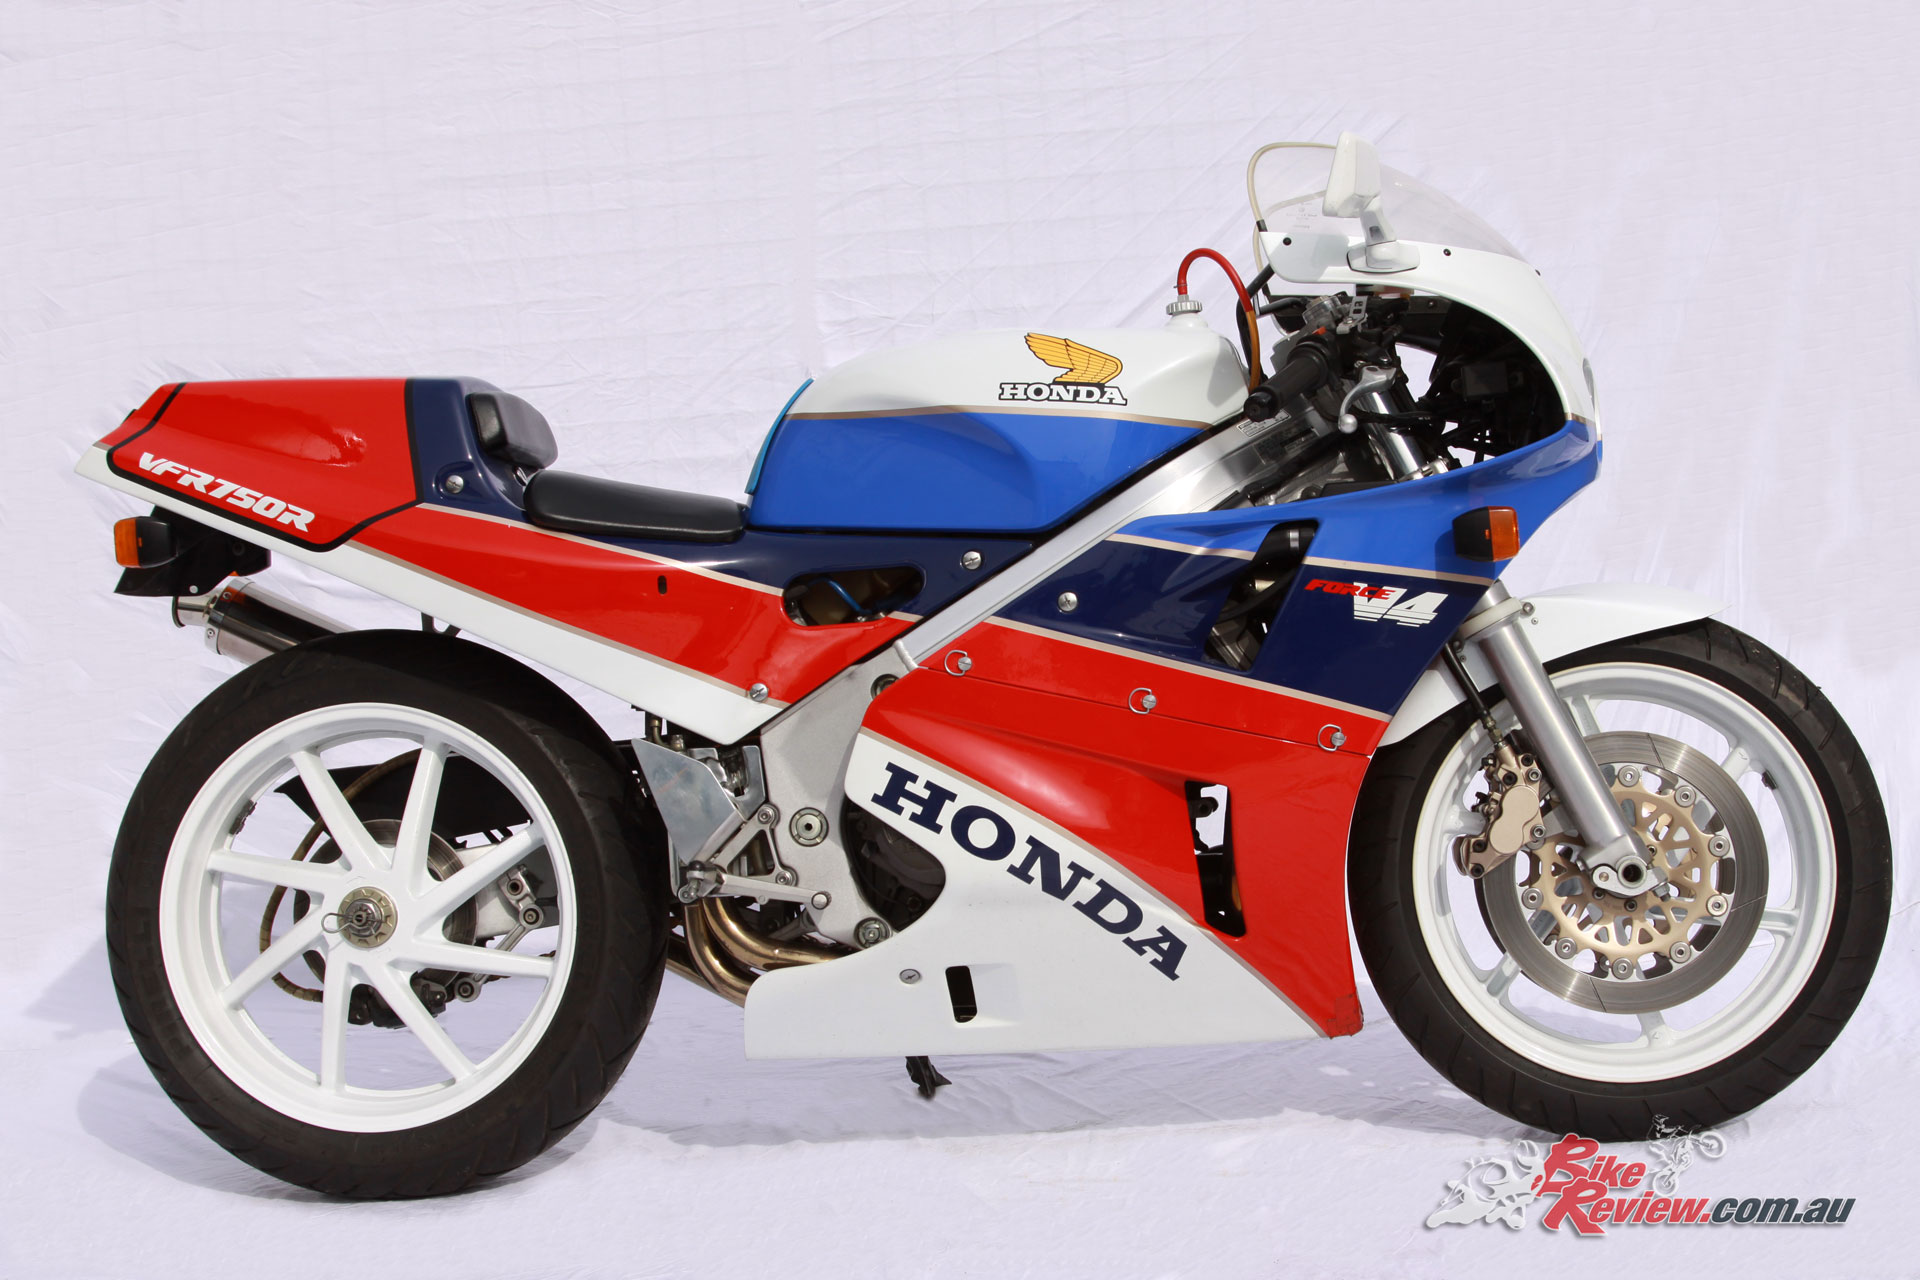 With the VFR750R Sochiro Honda set out to build the best superbike in the world - purchasable at your local dealer